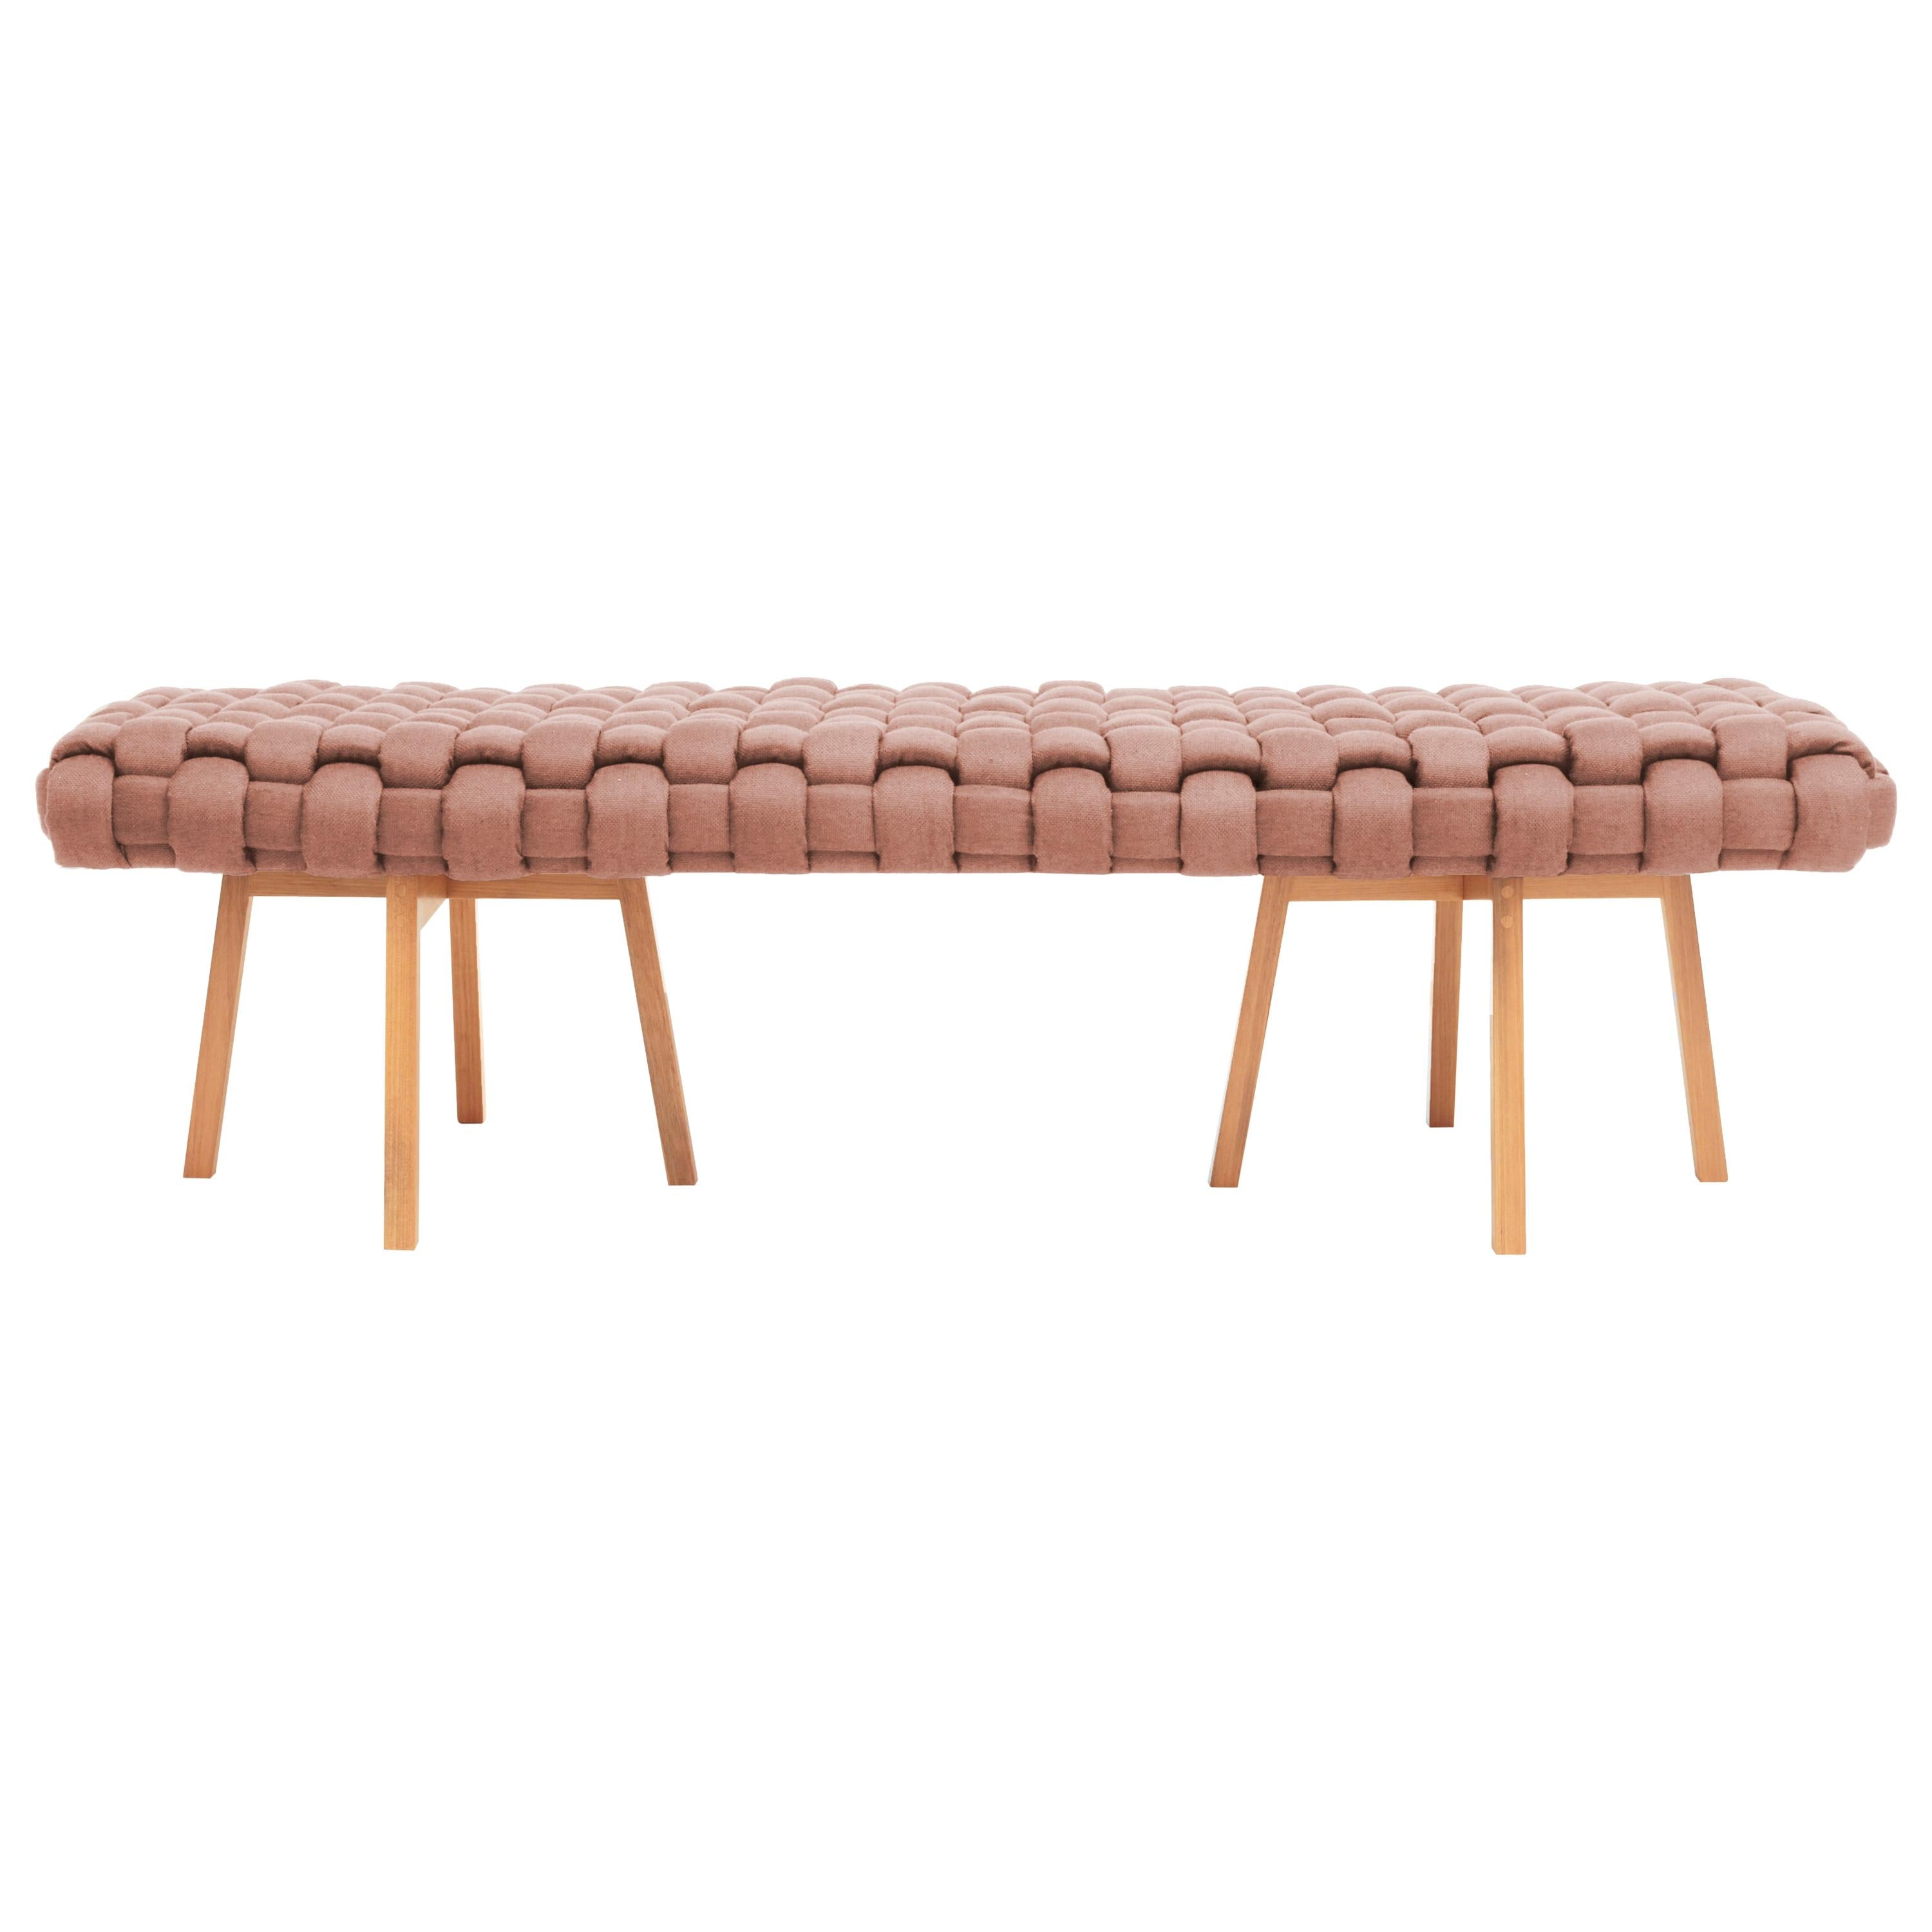 """Contemporary Wood Bench, Handwoven Upholstery, the """"Trama"""", Rose"""